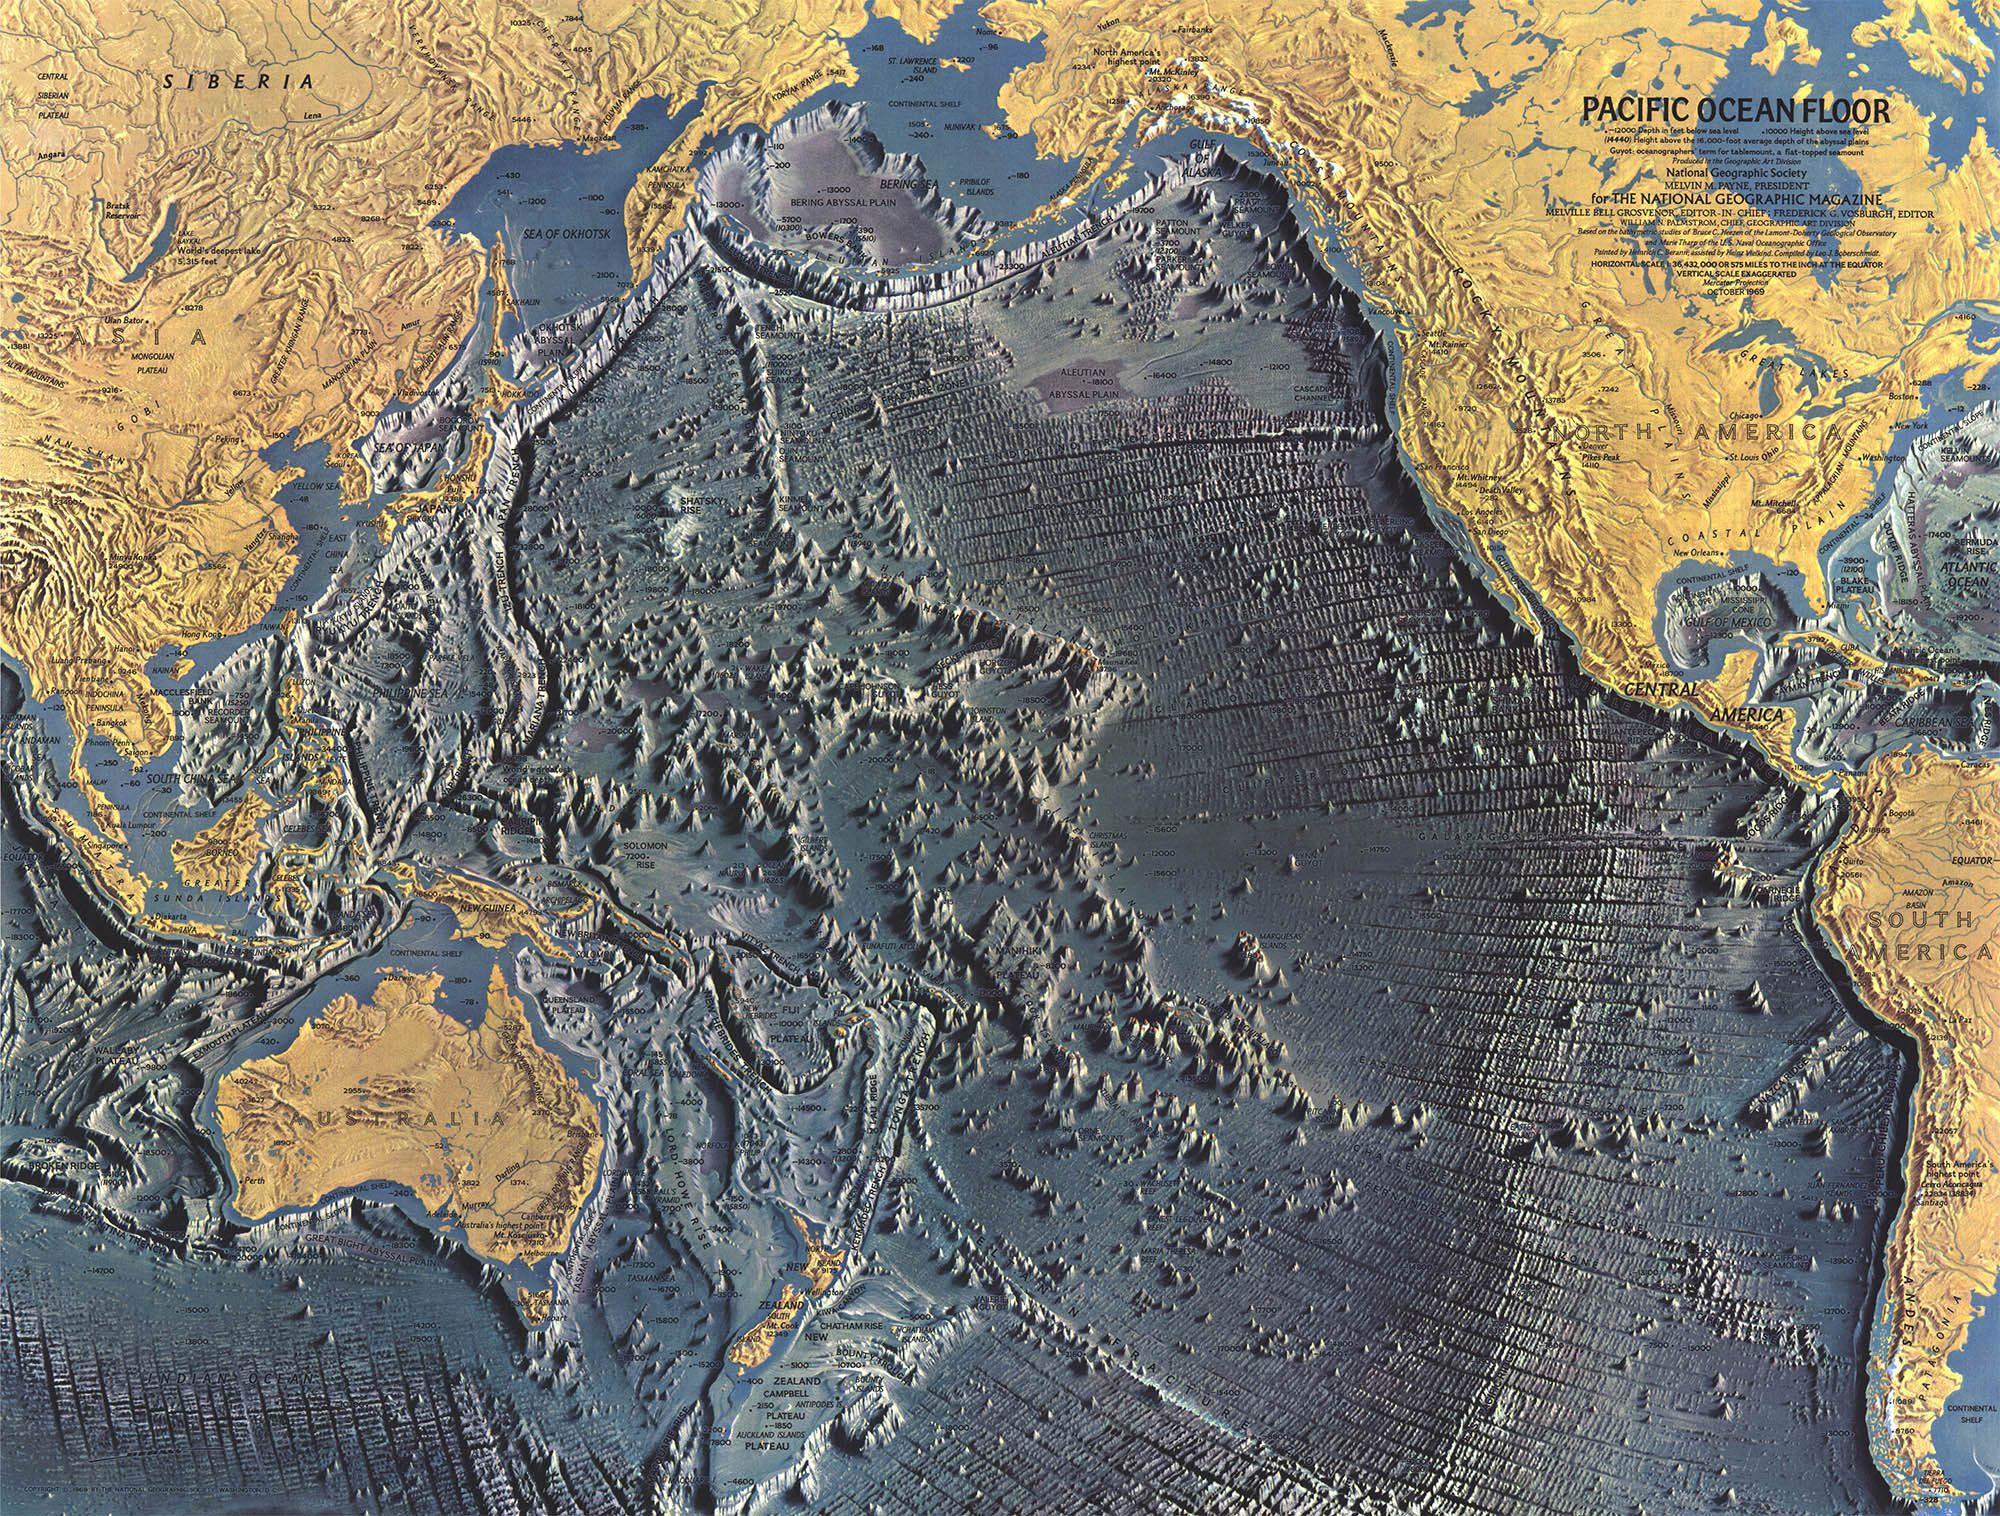 Pacific Ocean Topographic Map.Pacific Ocean Floor Map Pacific Ocean Mappery Earth Geology